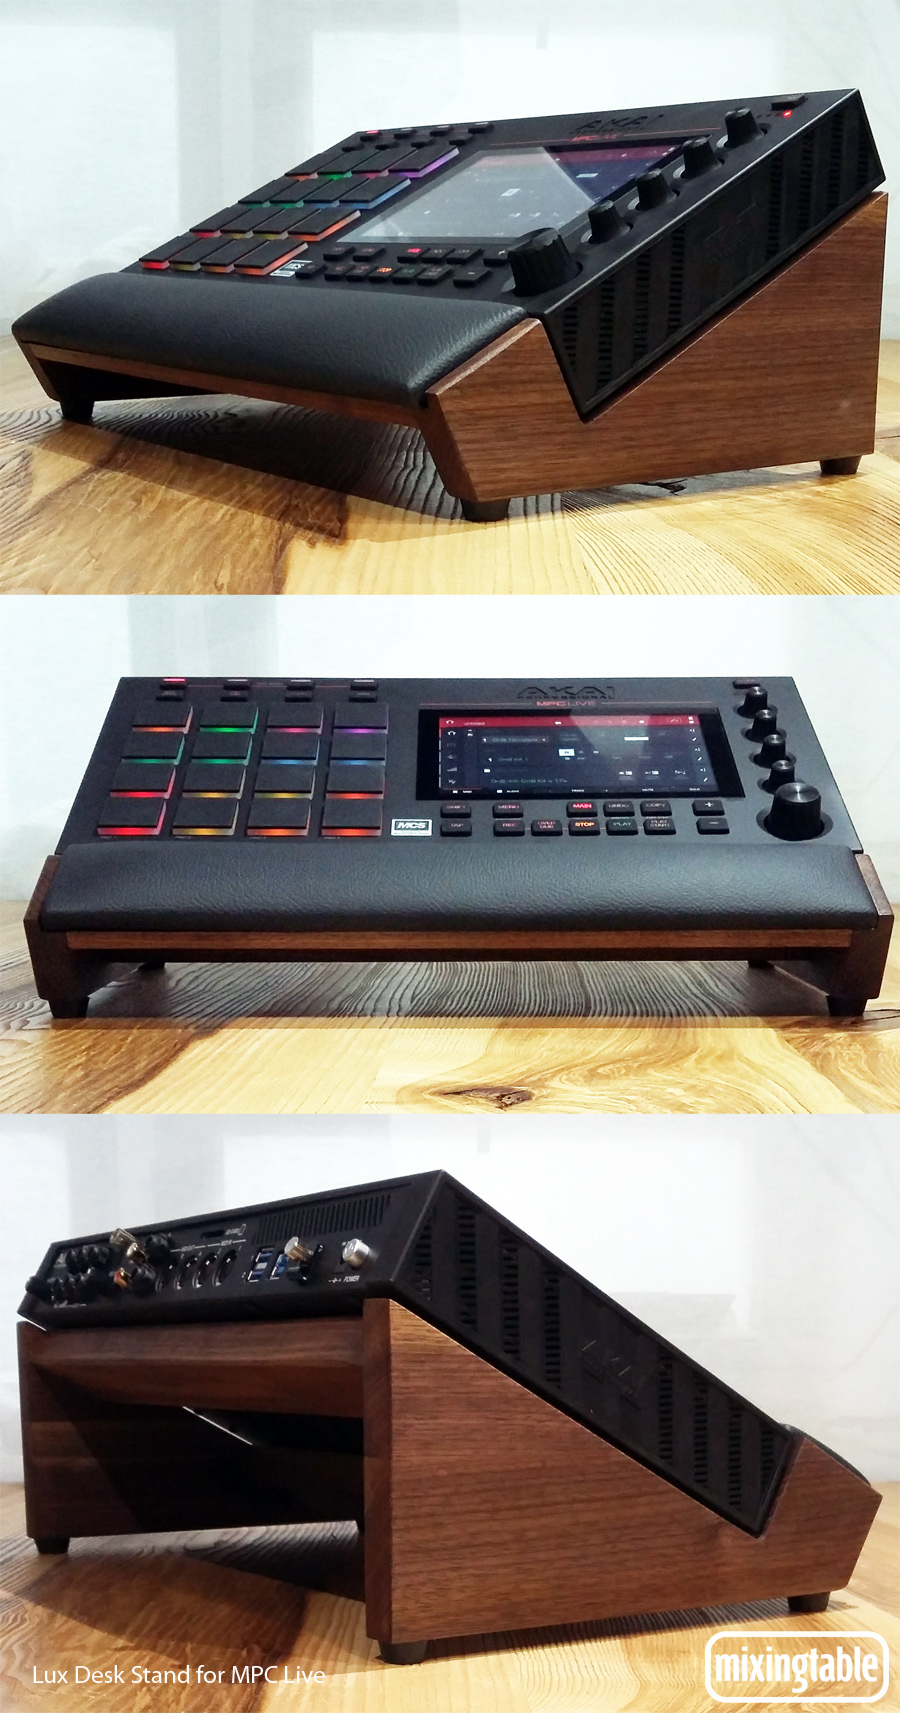 Lux Desk Stand for MPC Live | Mixingtable com